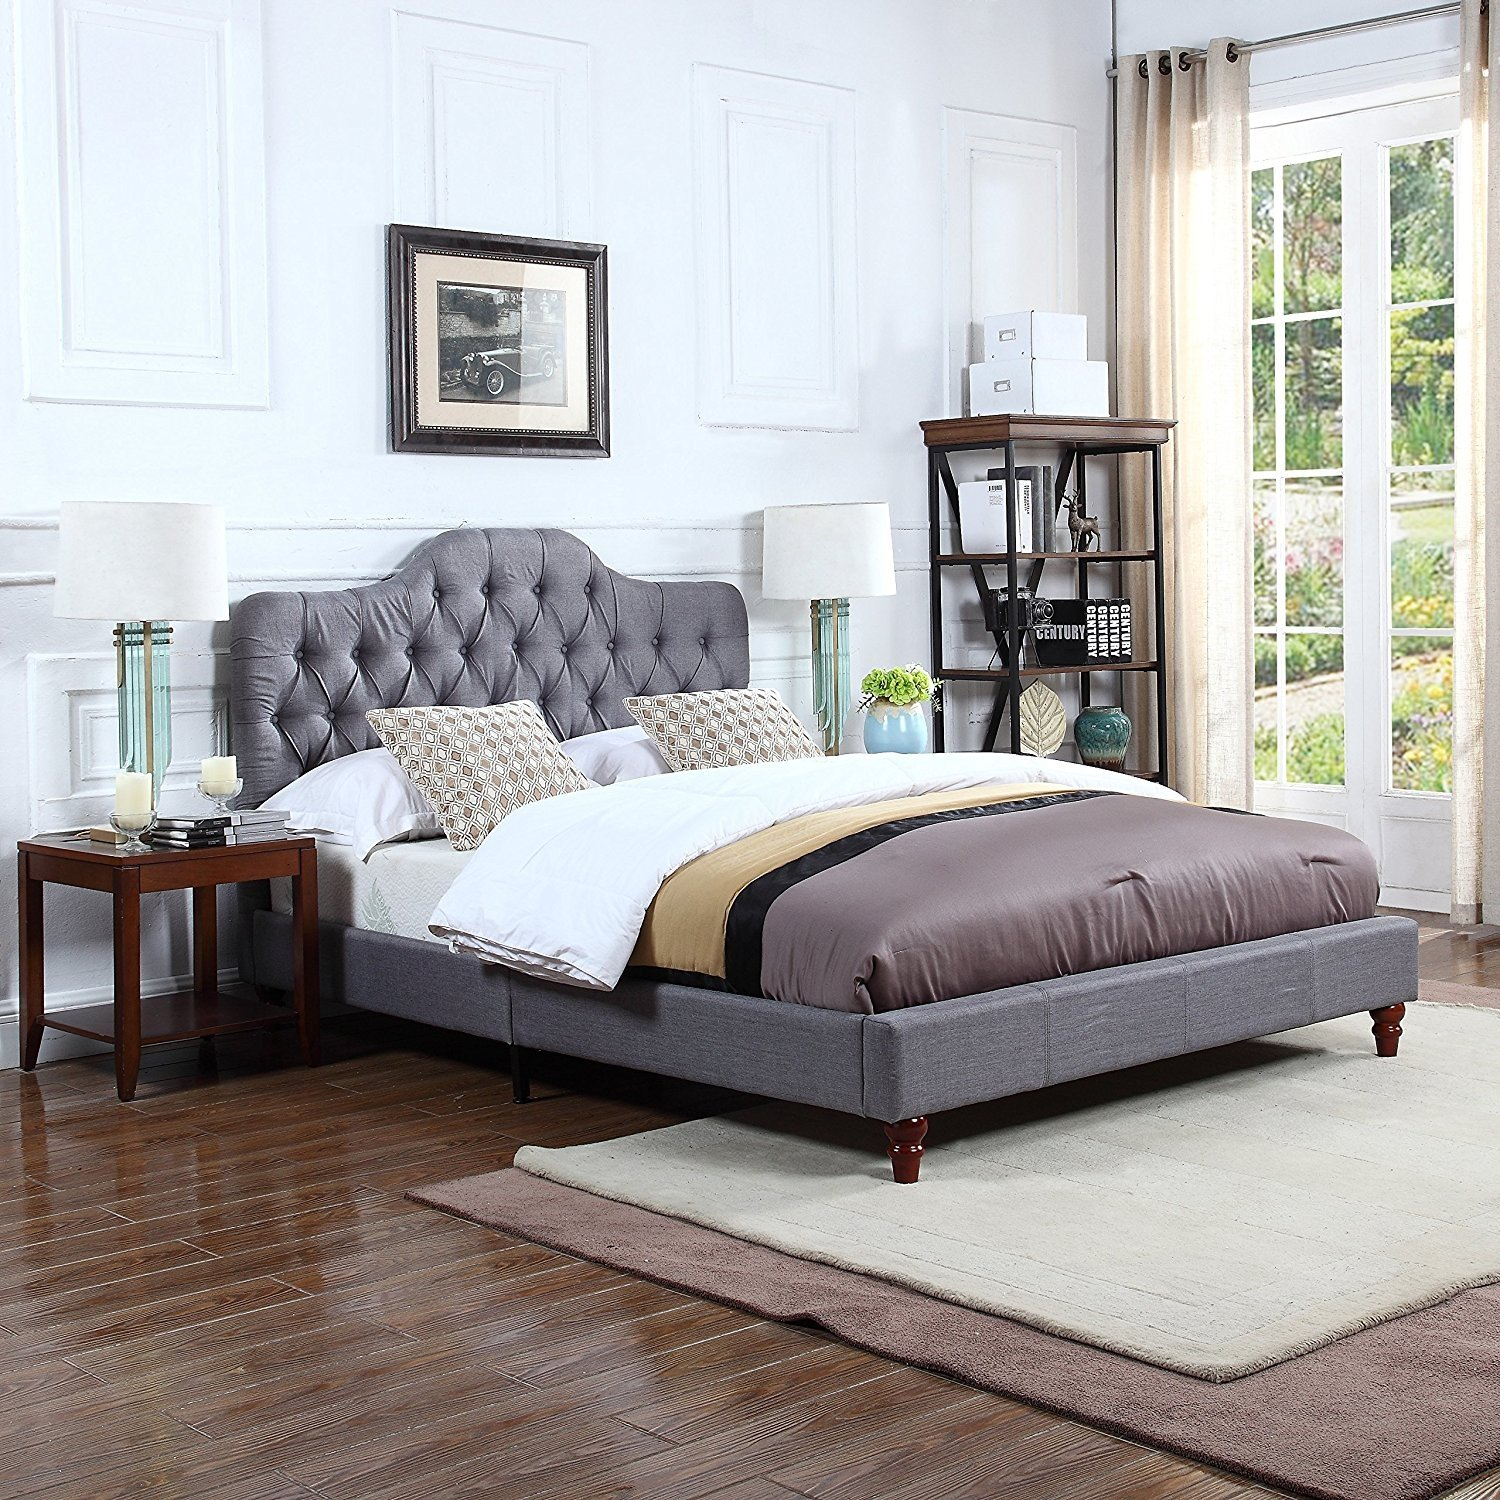 more photos 8b5c7 3c274 Details about Classic Grey Tufted Fabric Headboard with Low Profile Bed  Frame (Queen Size)